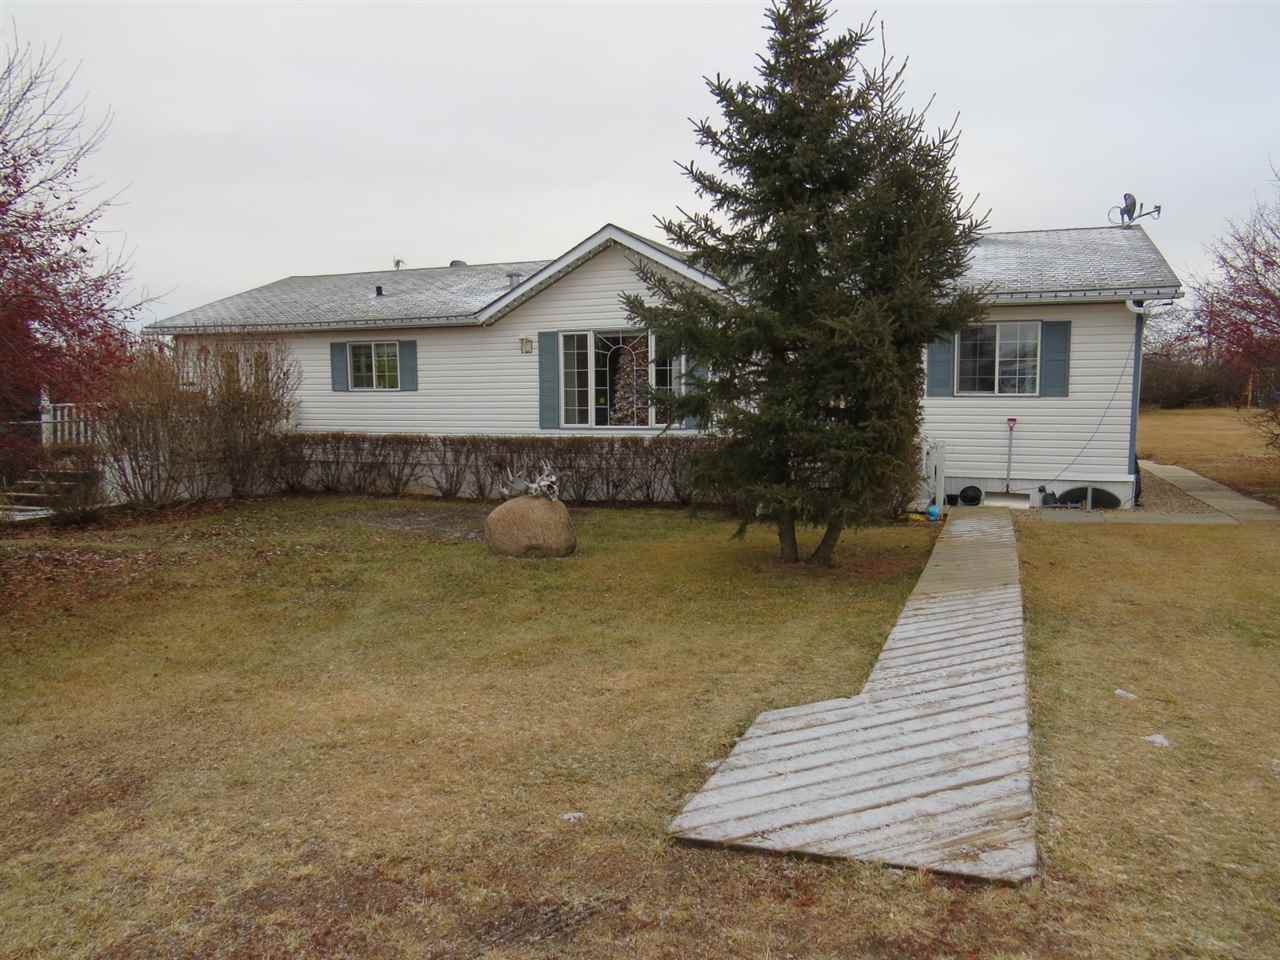 Main Photo: 11062 TWP 432: Rural Flagstaff County House for sale : MLS®# E4181187